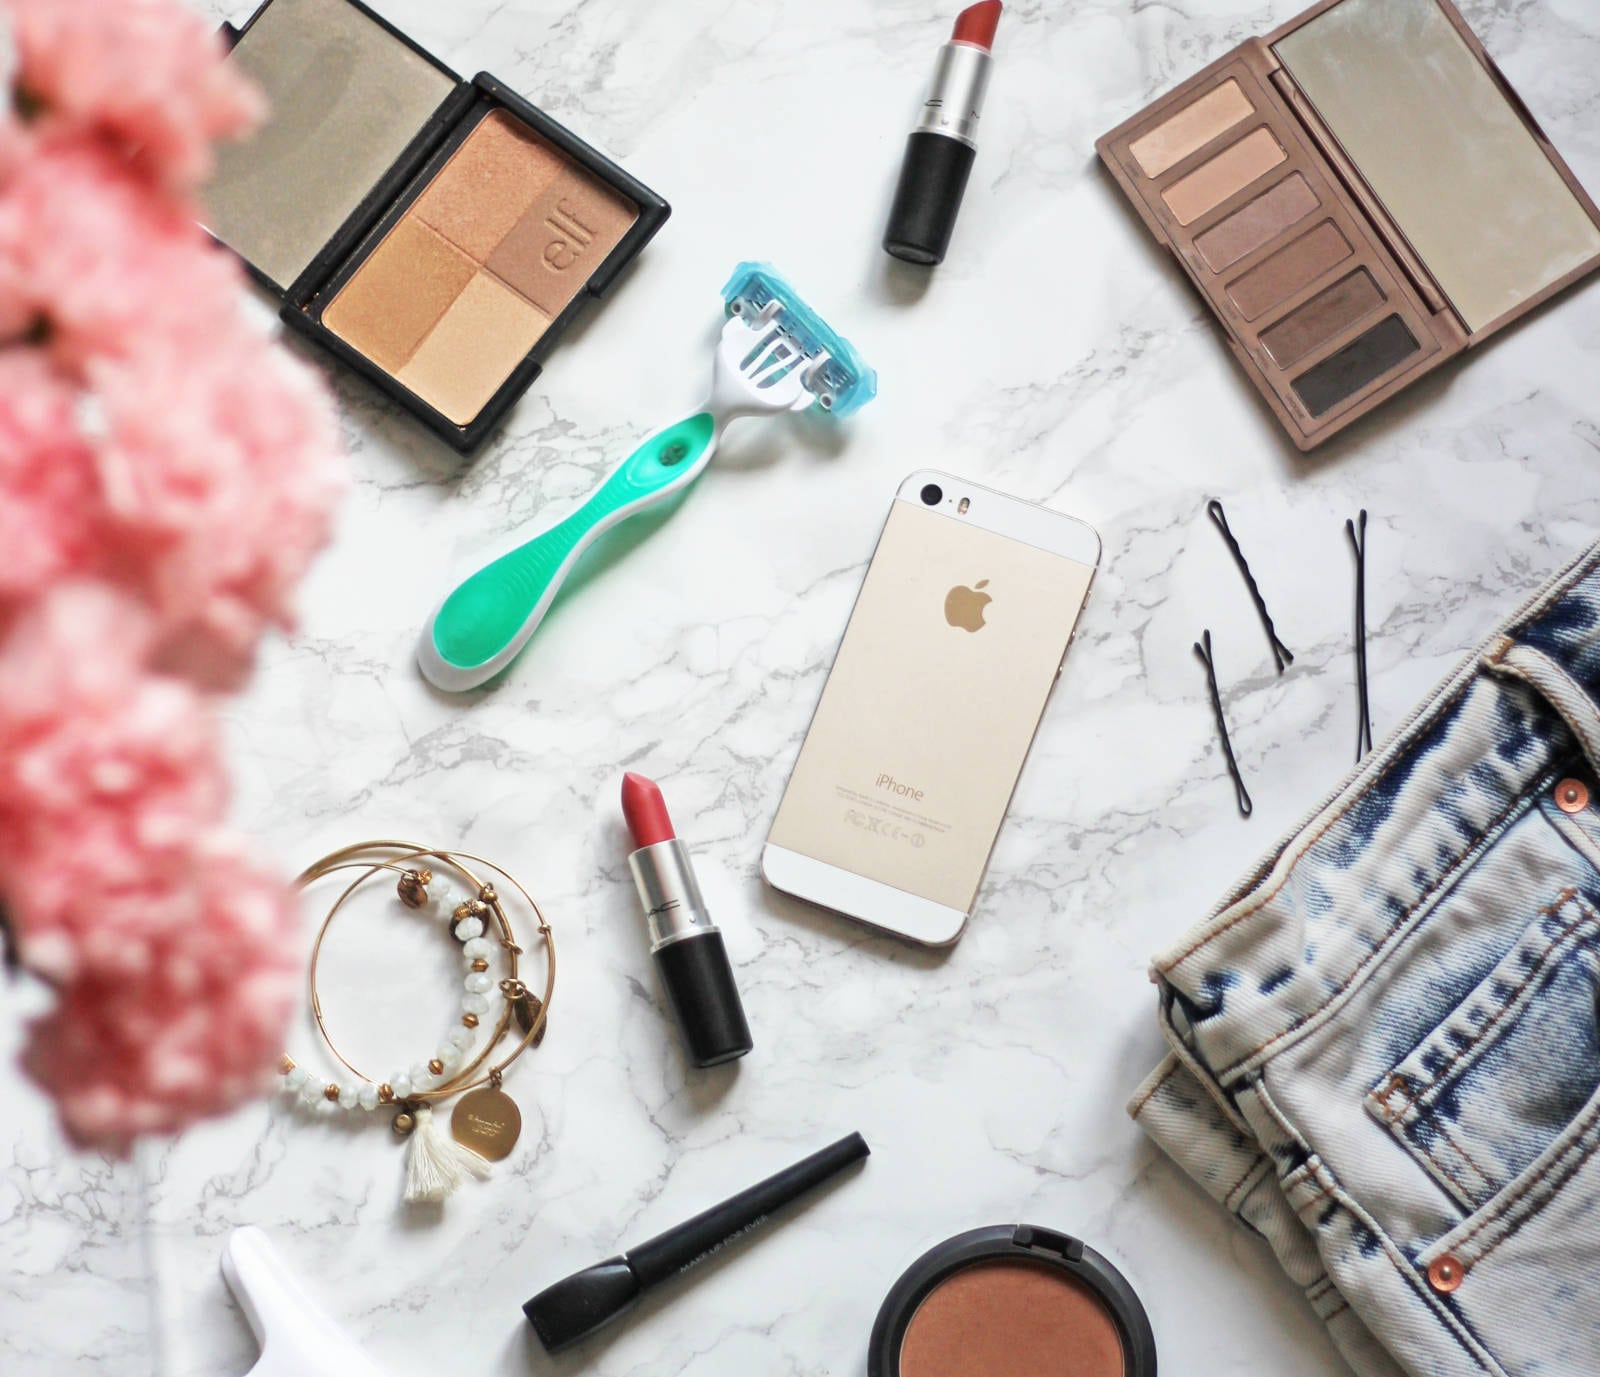 whats-in-my-overnight-bag | overnight bag pack | packing for a trip | Mash elle lifestyle blogger | razor | makeup | jewelry